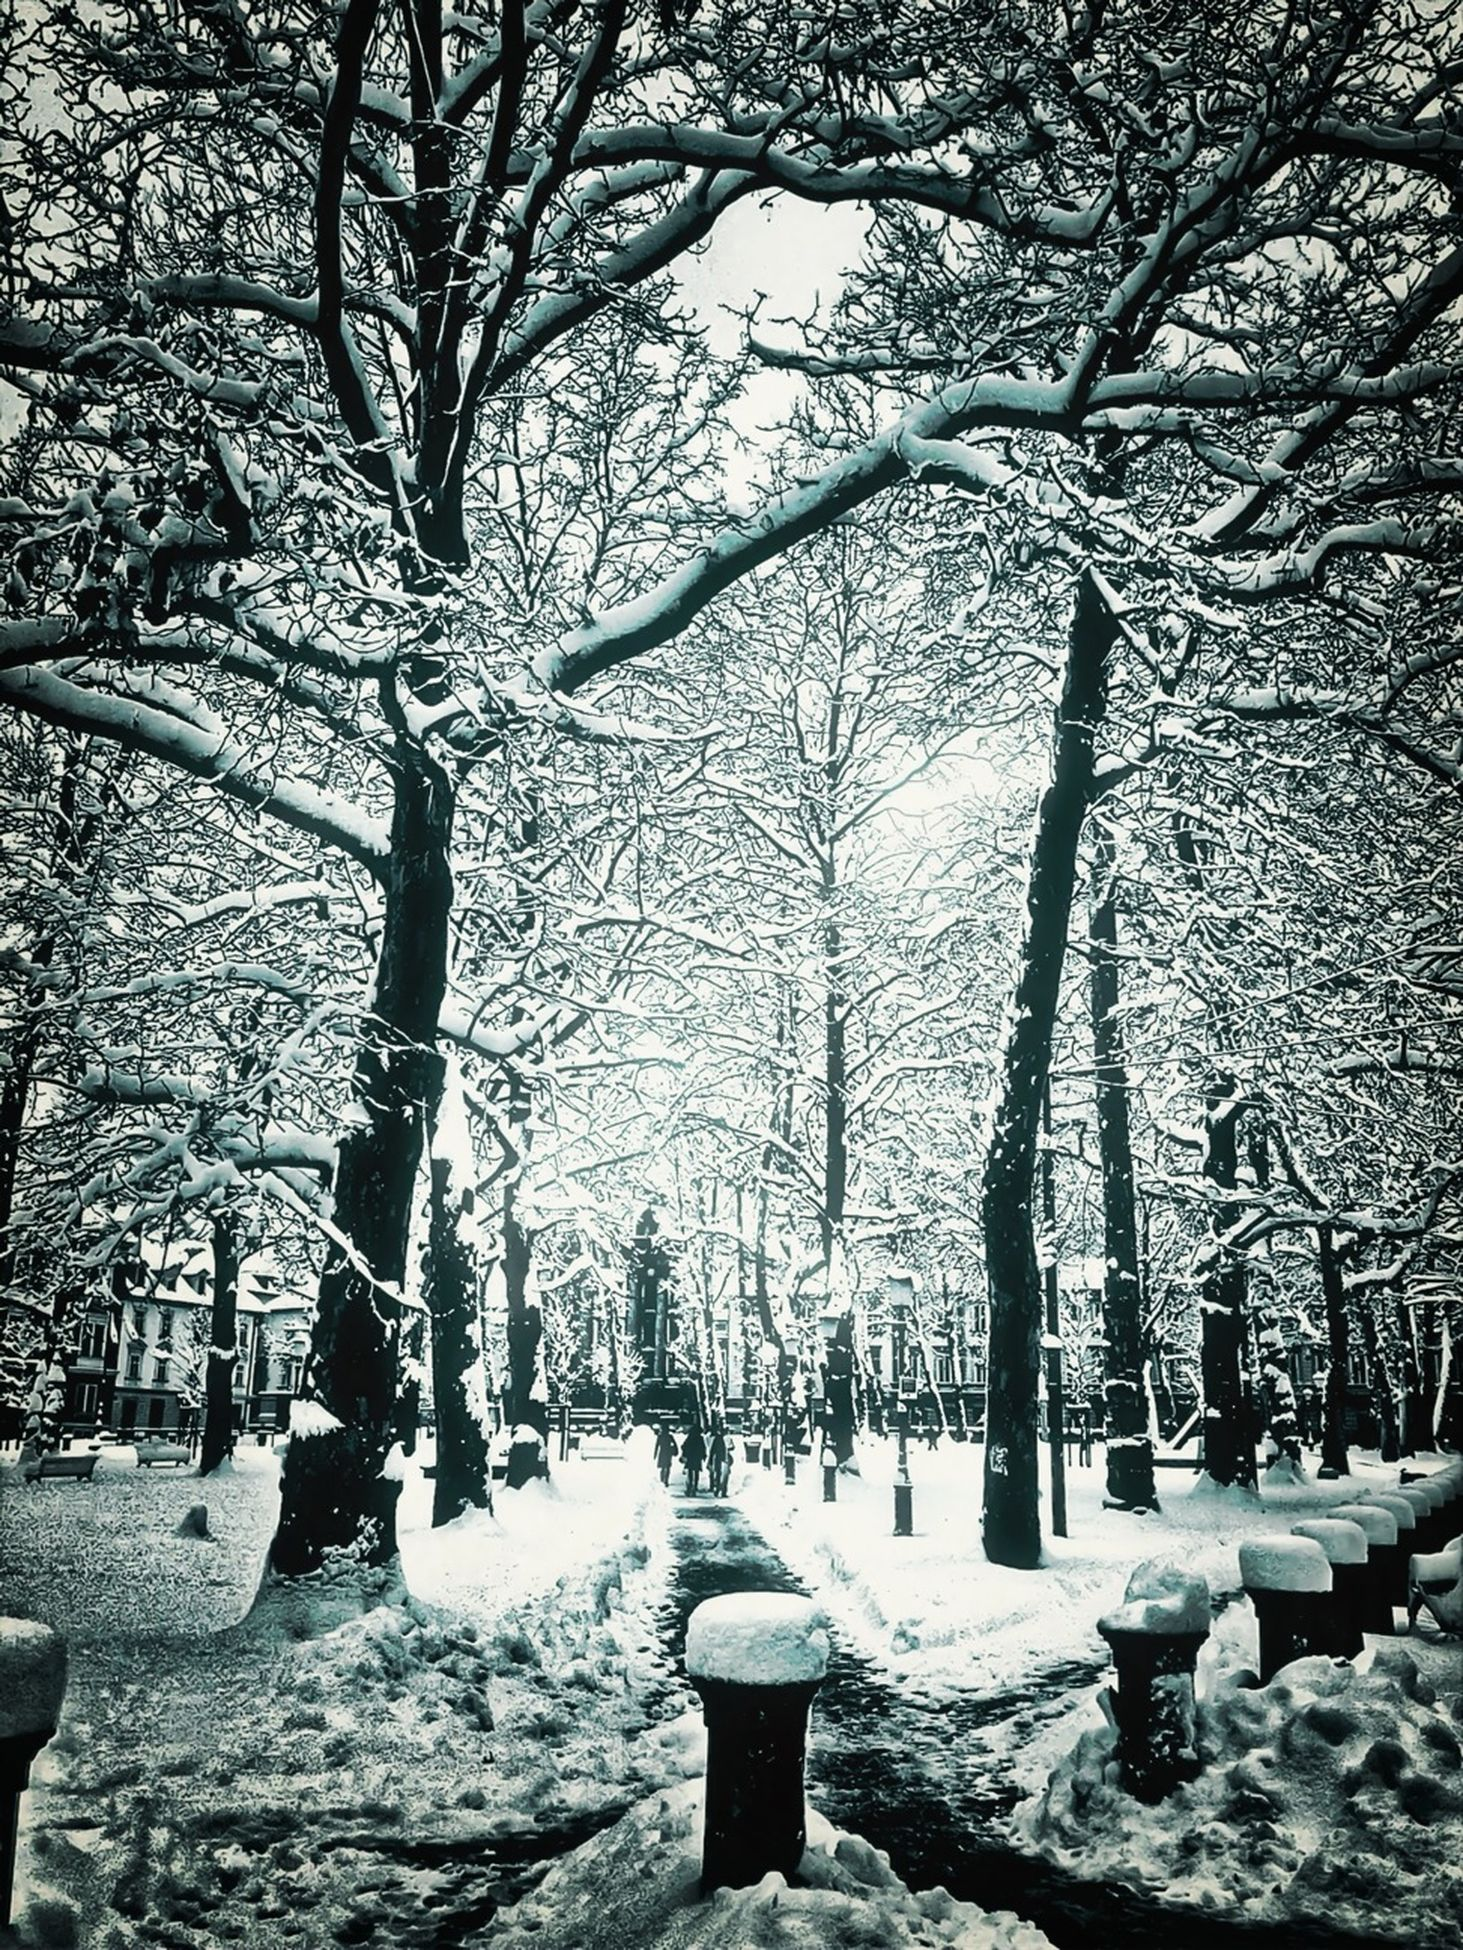 snow, winter, cold temperature, season, tree, weather, bare tree, covering, branch, tree trunk, nature, frozen, covered, tranquility, white color, bench, park - man made space, field, outdoors, day